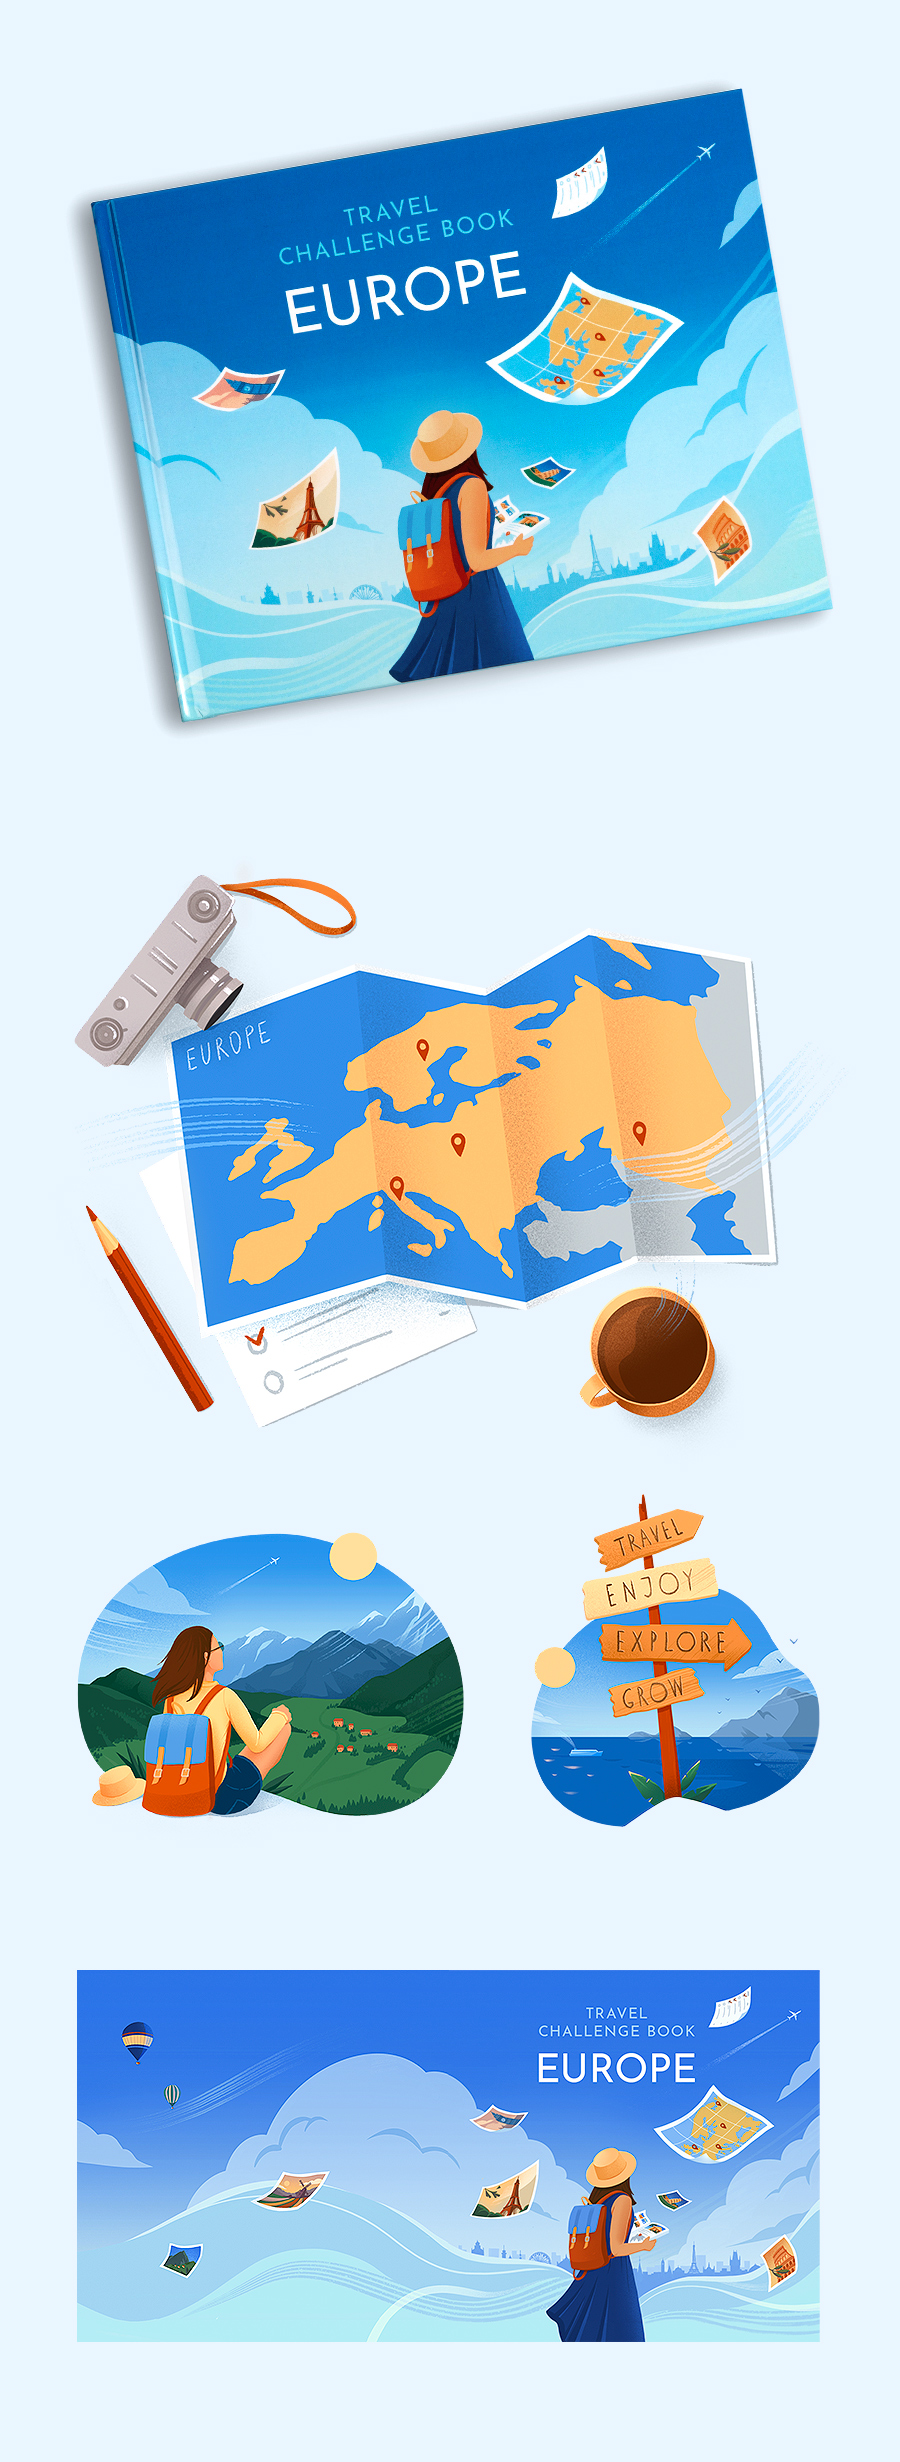 Travel-Book_illustrations_by_Anniko